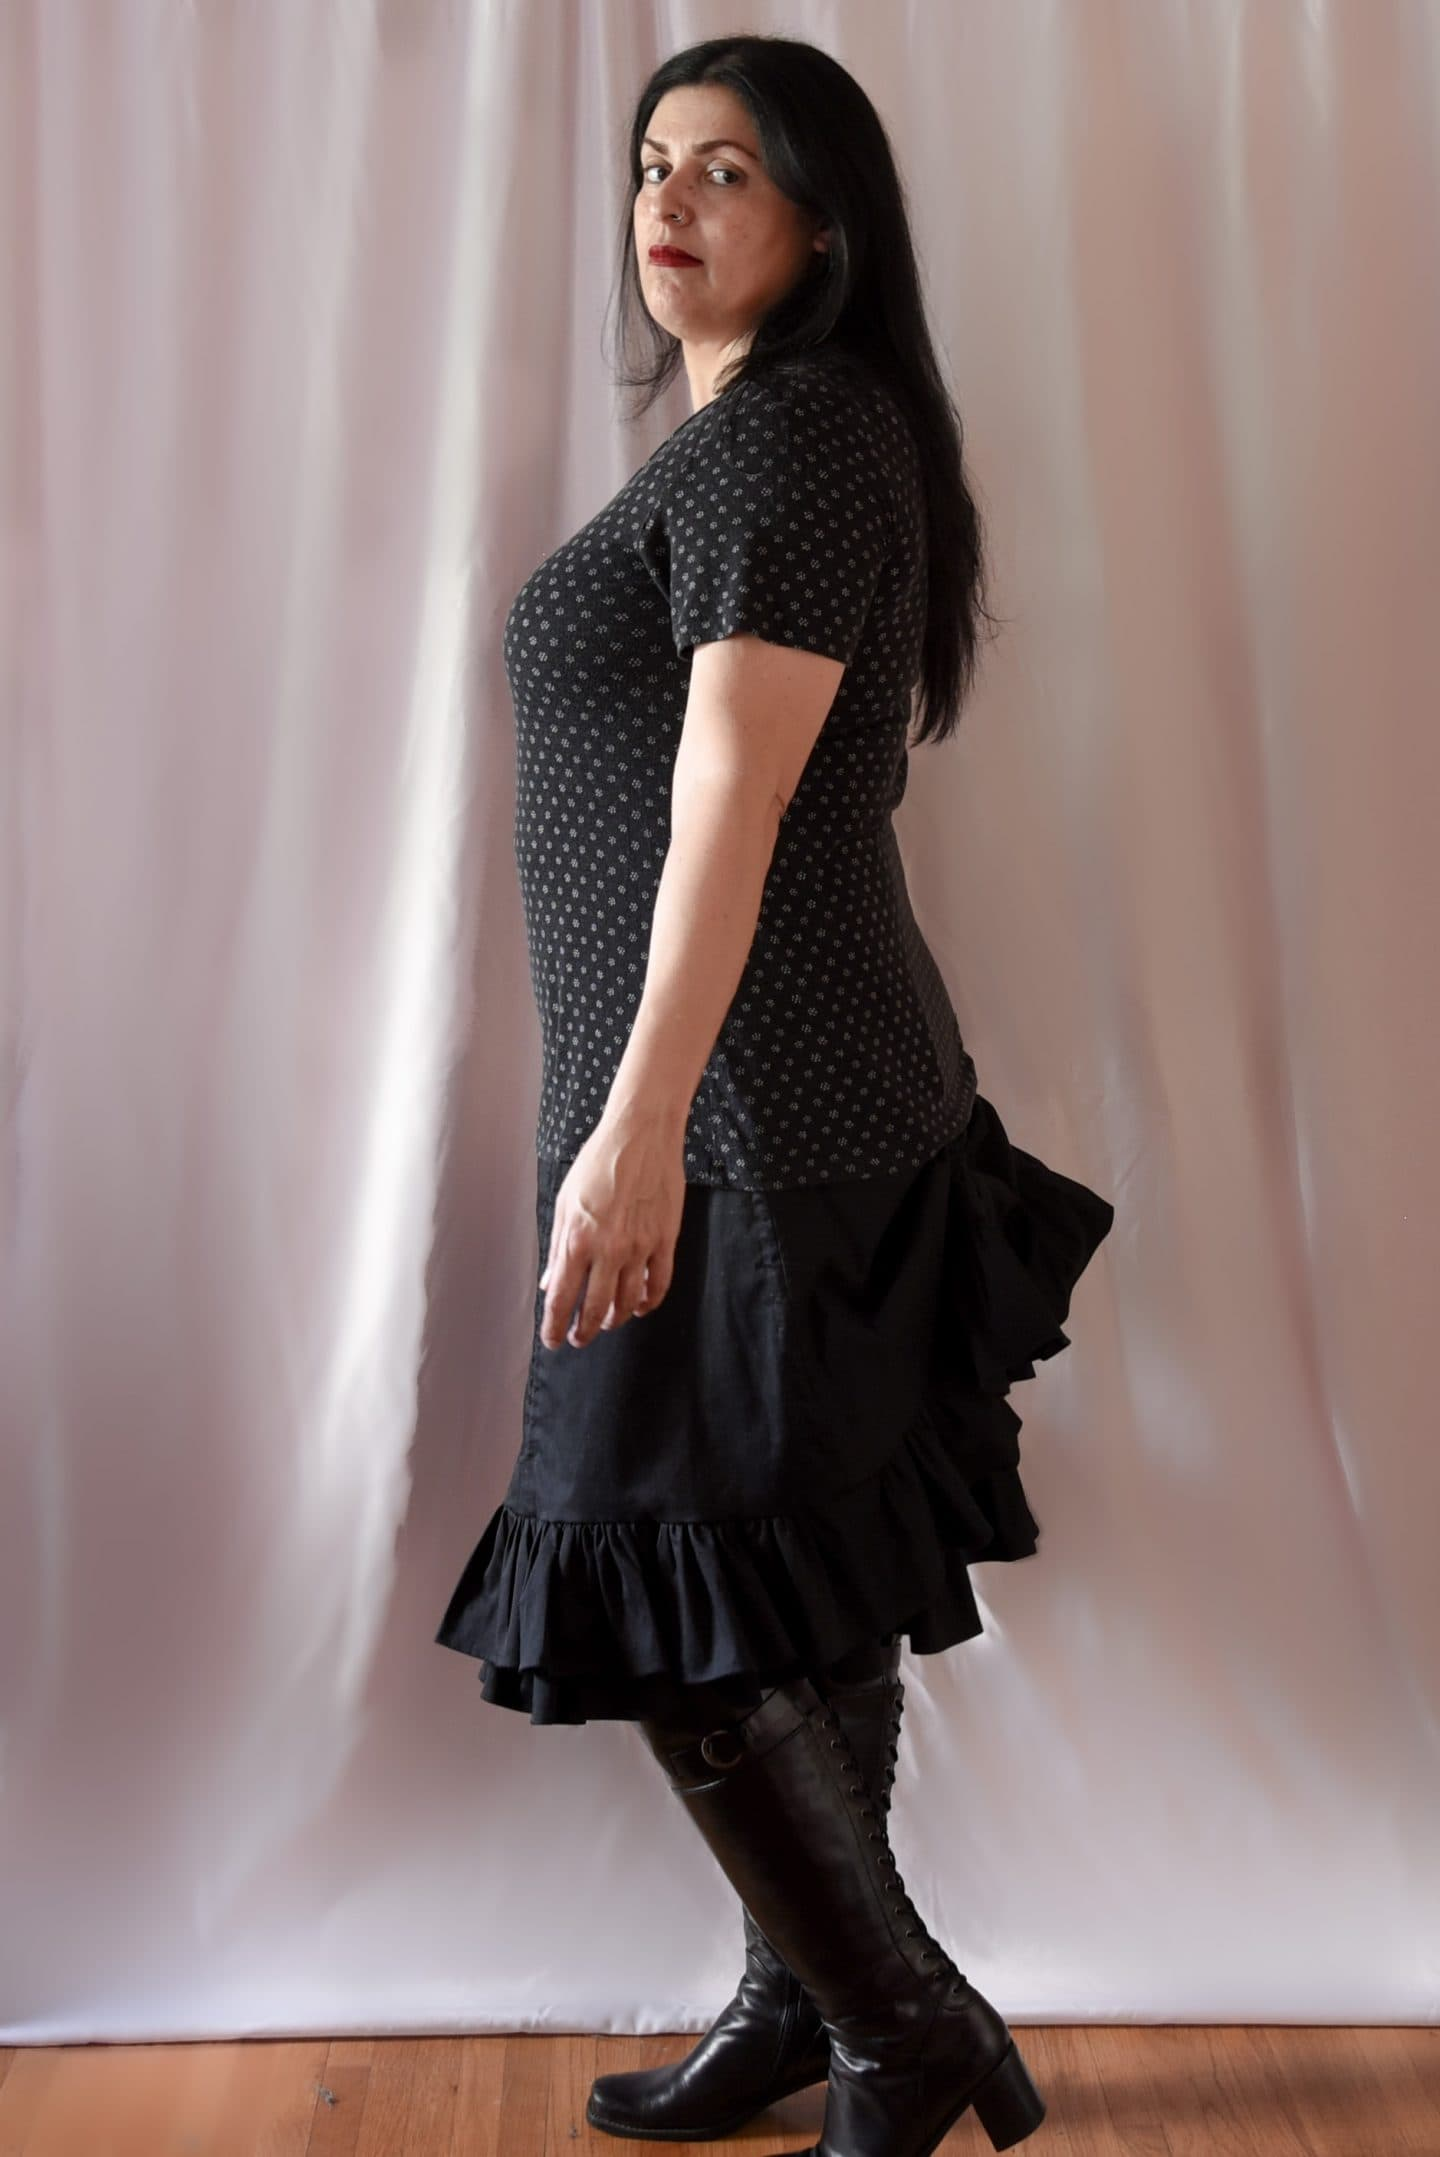 Image of woman sideways to the camera with long black hair wearing a polka-dotted T-shirt and a Victorian-inspired black skirt with with two layers with the top skirt with two channels raised to created a bustle effect